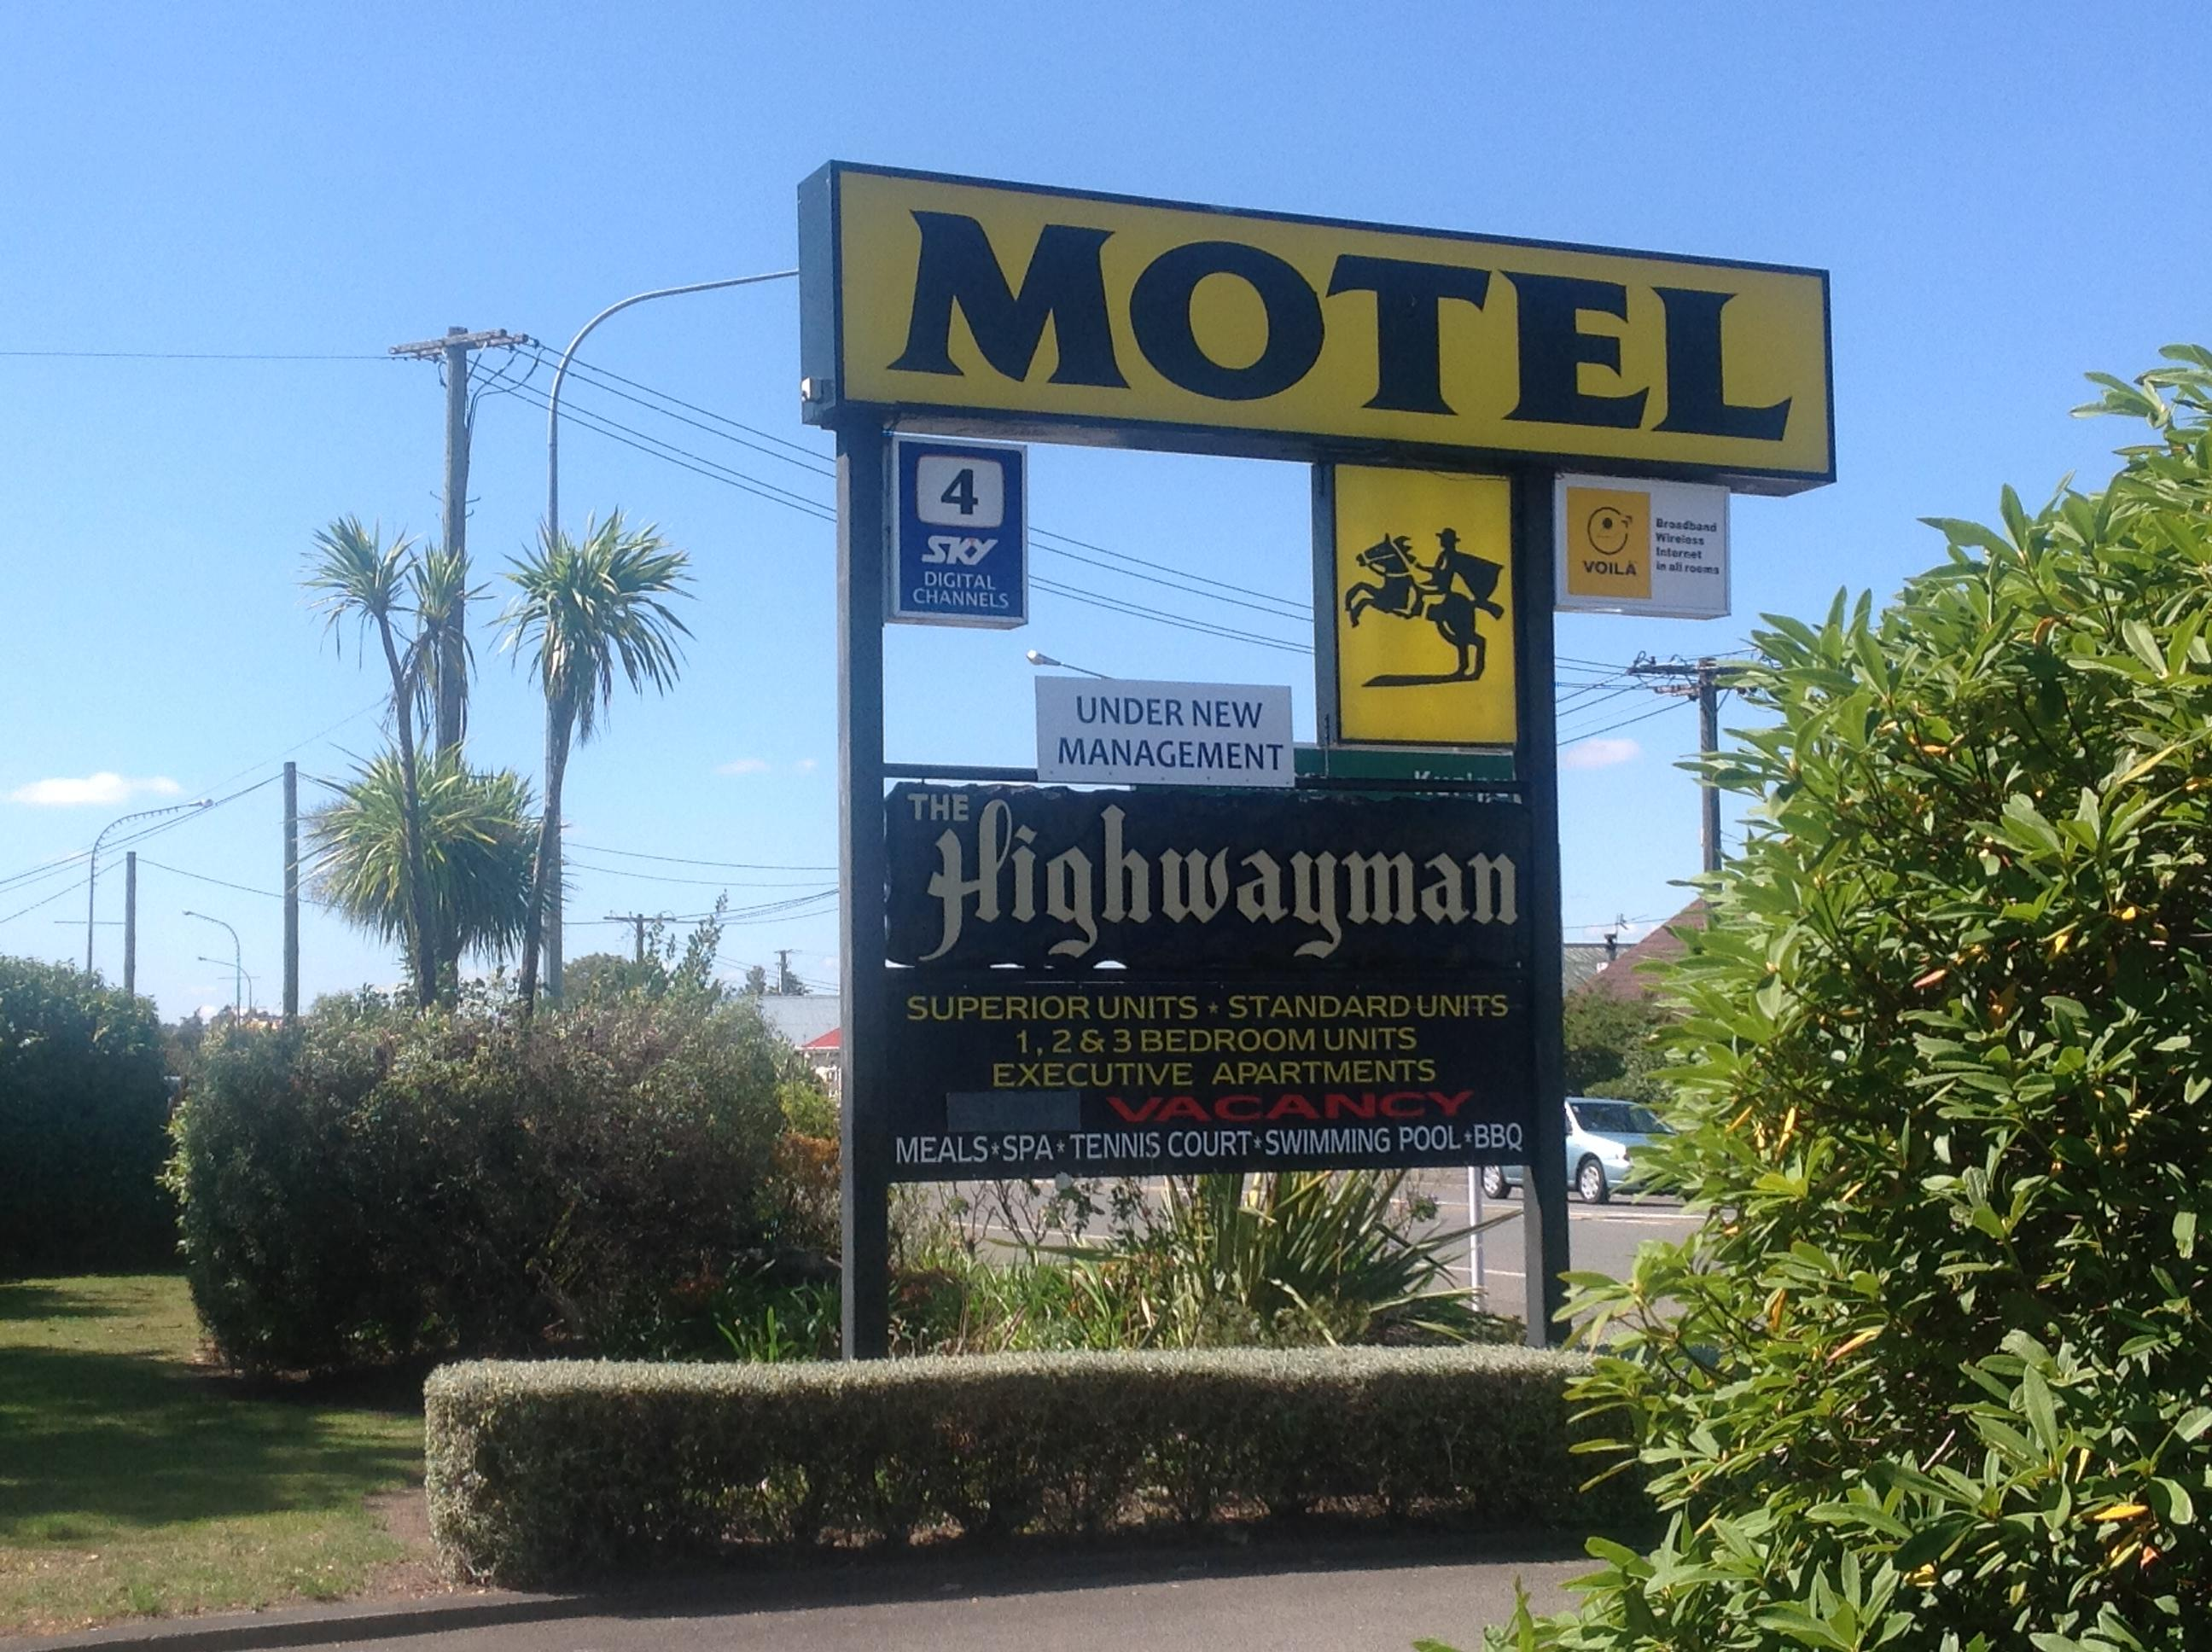 The Highwayman Motel